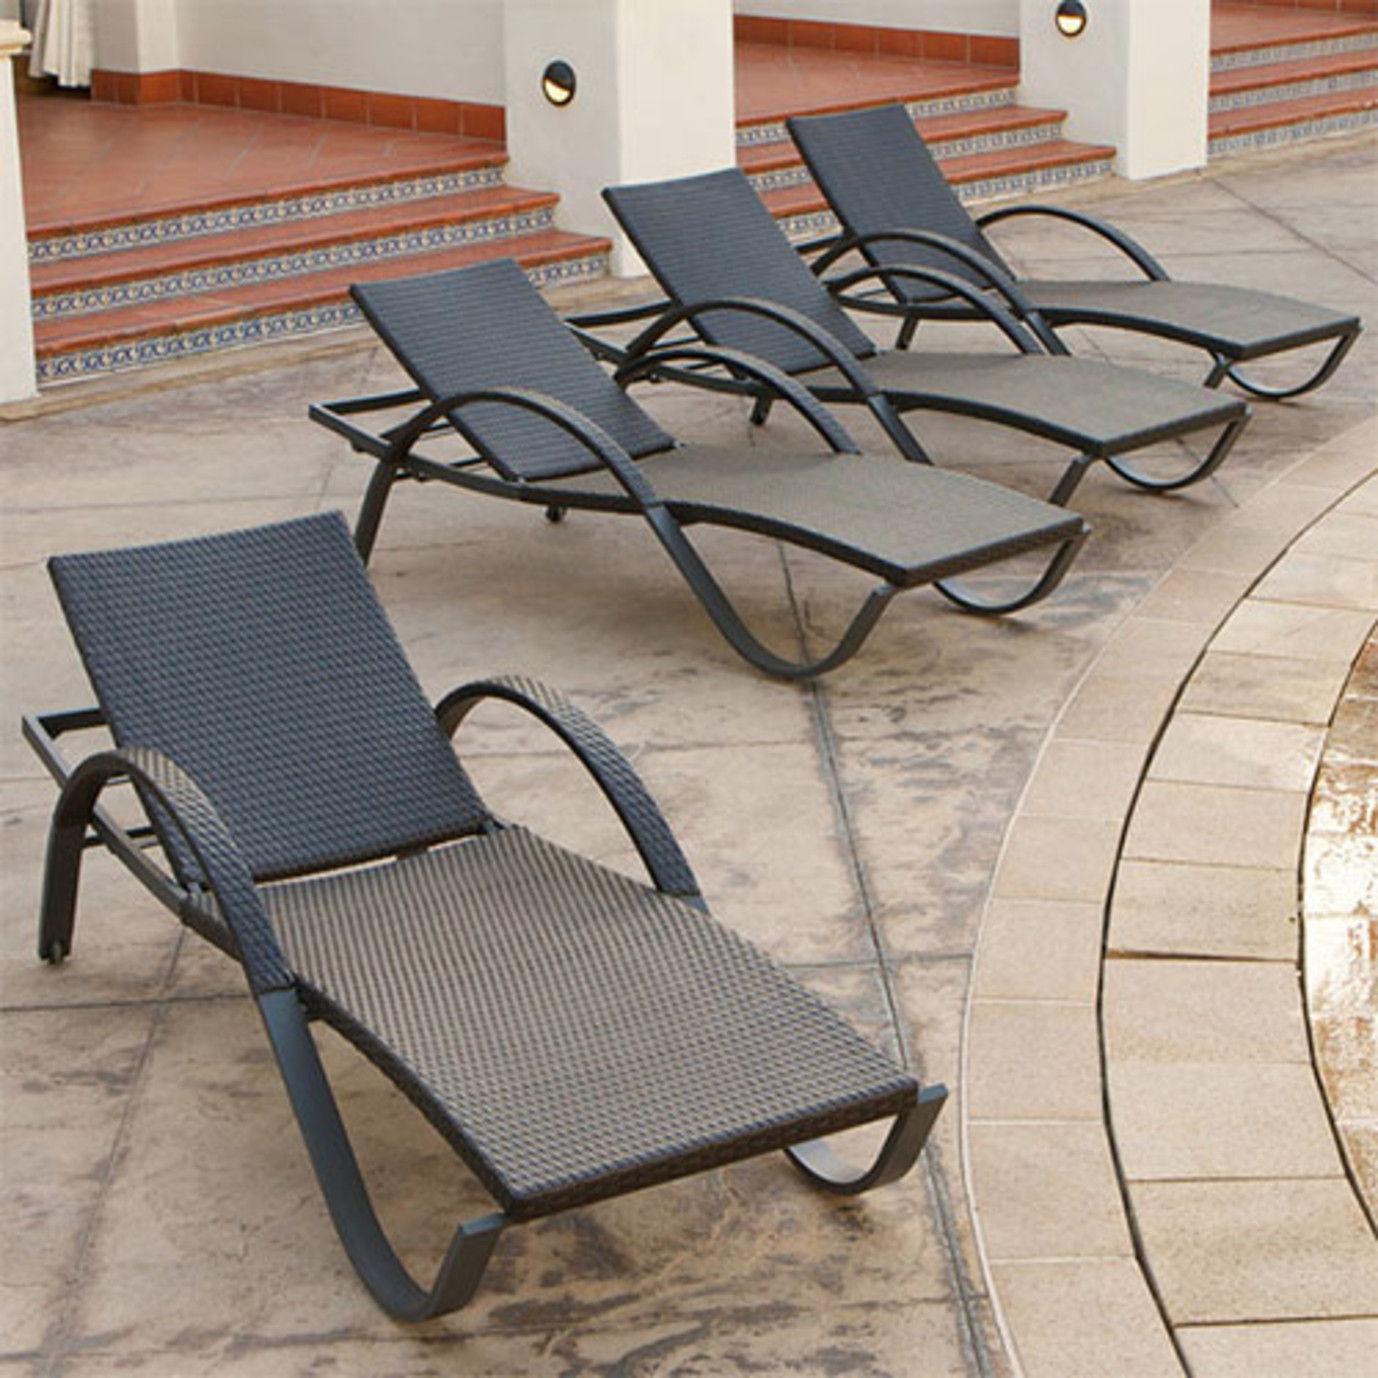 Deco™ Chaise Lounges 4pk